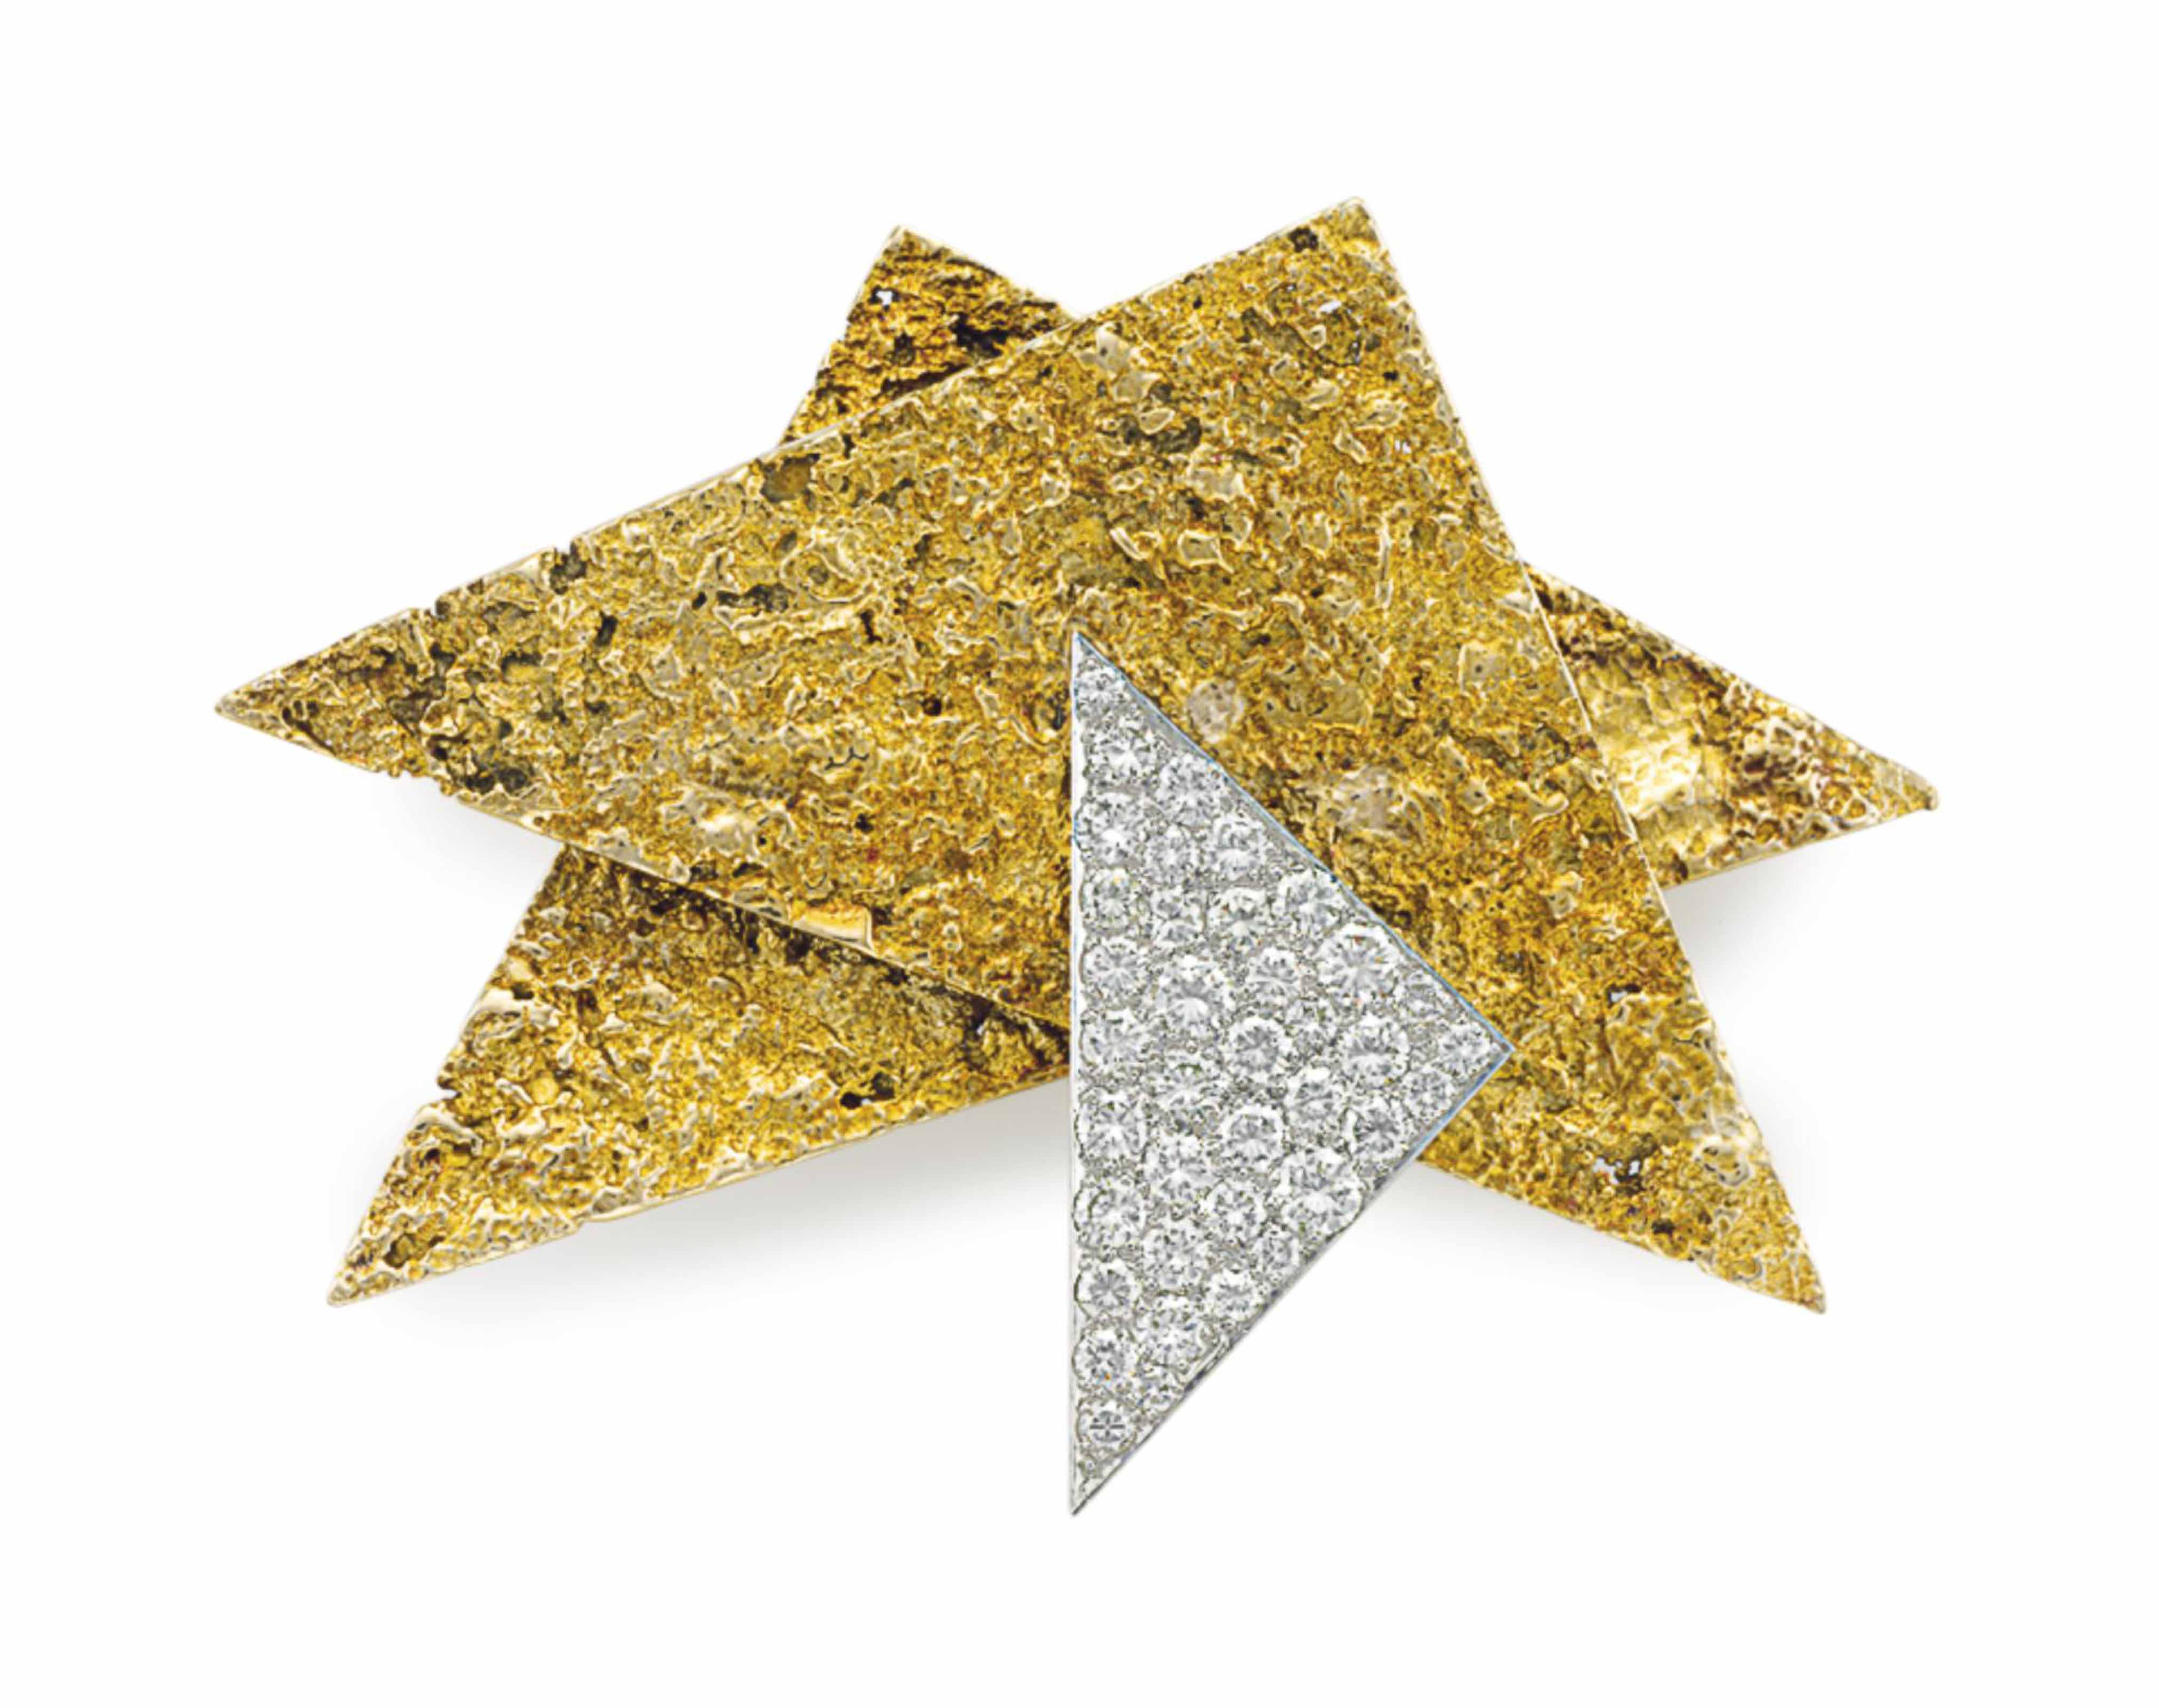 A DIAMOND, GOLD AND PLATINUM BROOCH, BY MARIANNE OSTIER